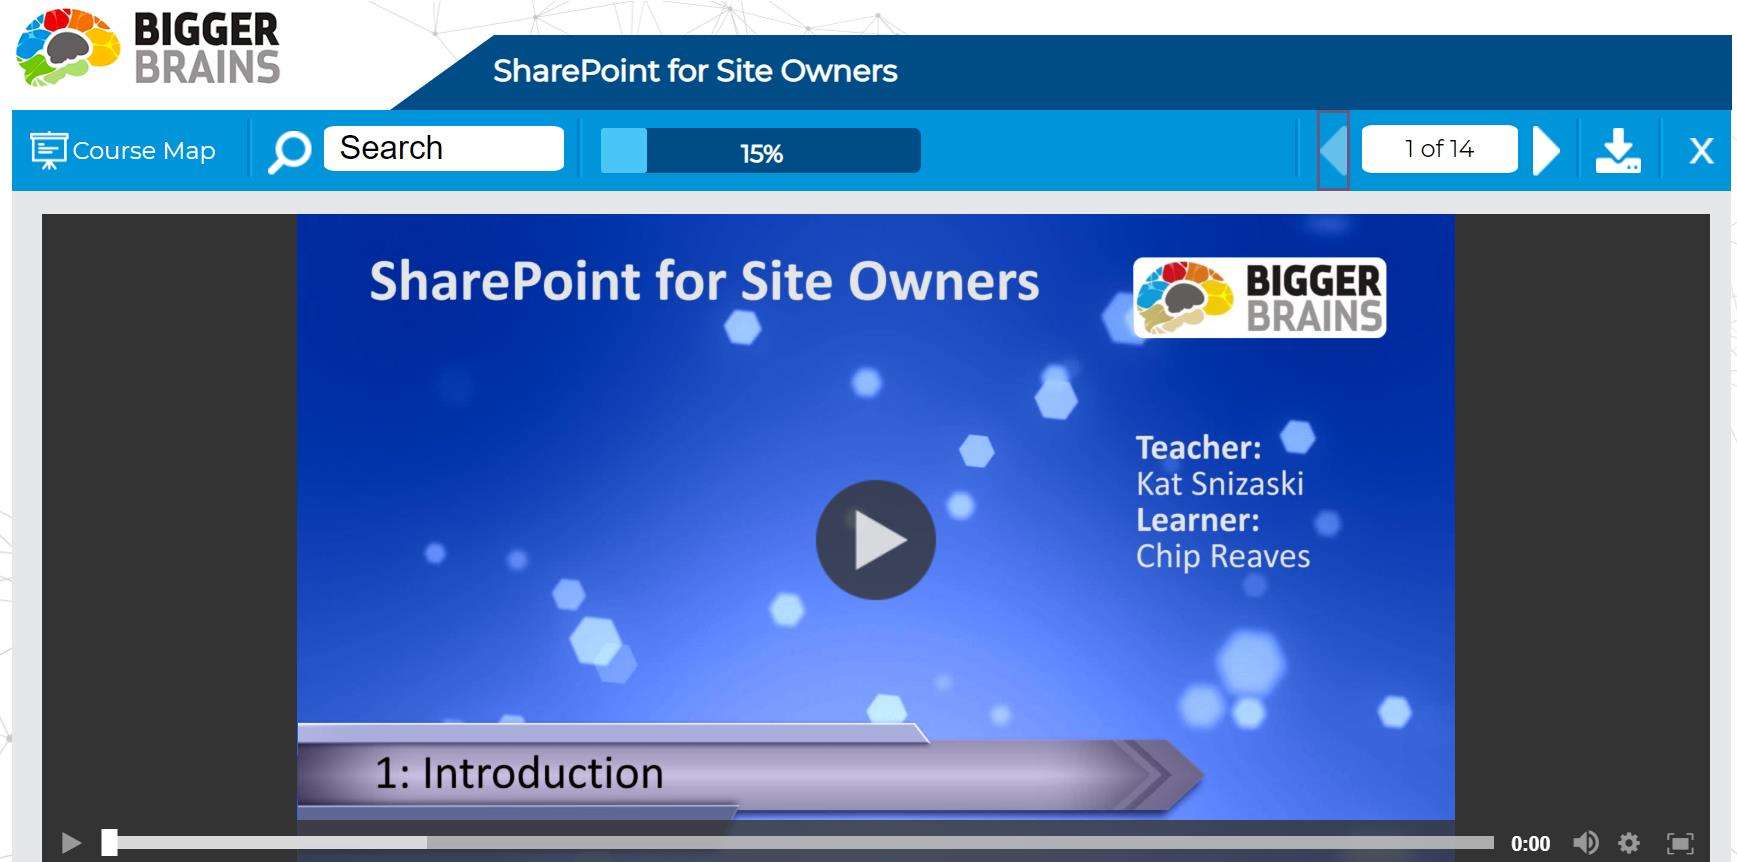 SharePoint-for-Site-Owners.jpg